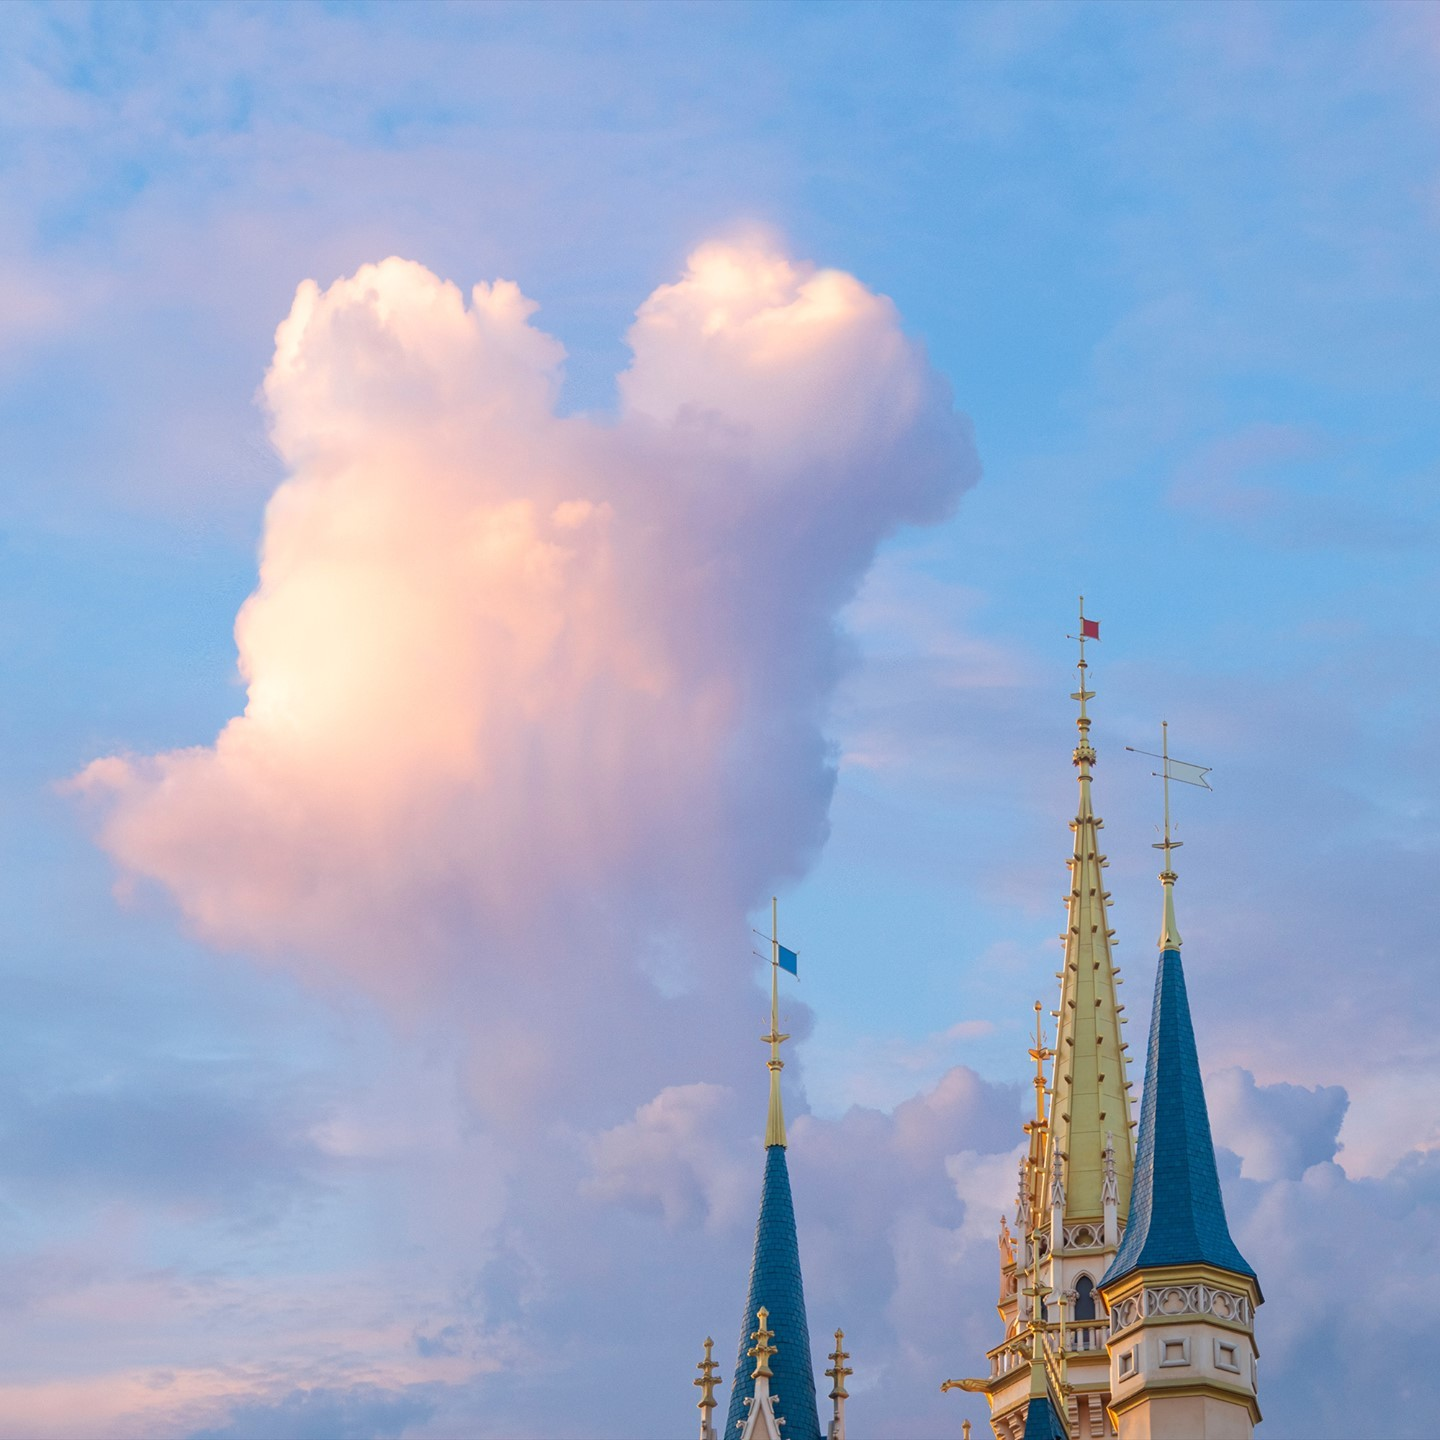 image of If you look up at the sky... 空を見上げたら・・・☁️ #cloud #mickeyshape #cinderellacastle...